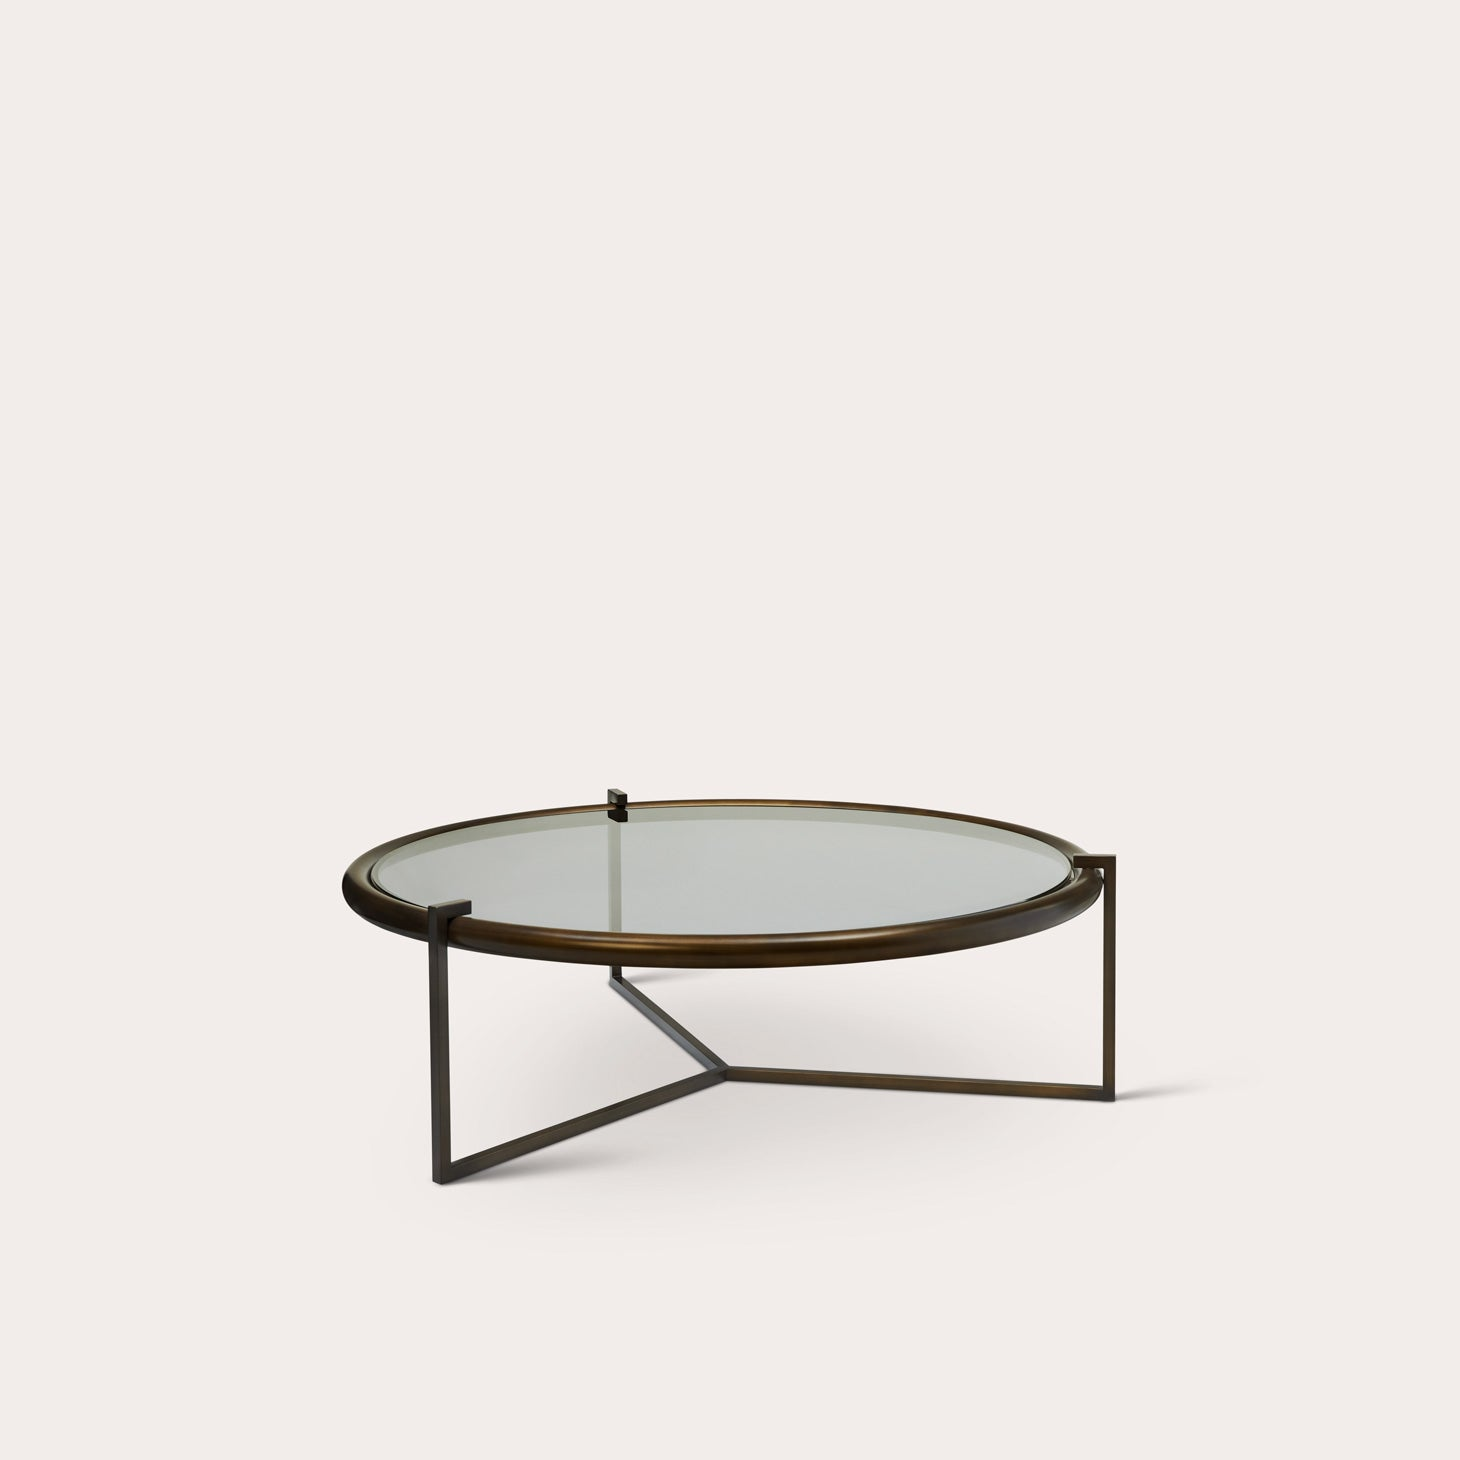 Rua Tucuma Coffee Table Tables Osvaldo Tenorio Designer Furniture Sku: 782-230-10019